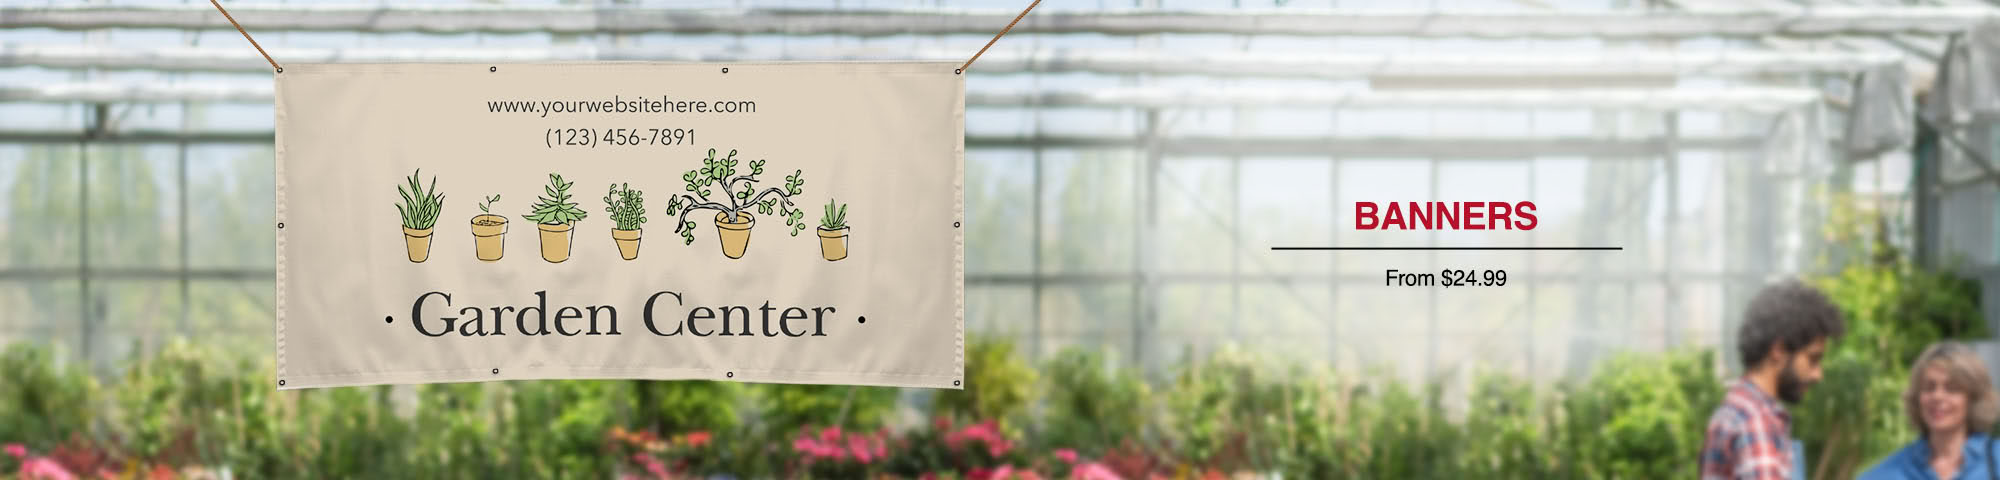 Postcards. Save 25% vs. the leading competitor.  From $59.99 for 4.